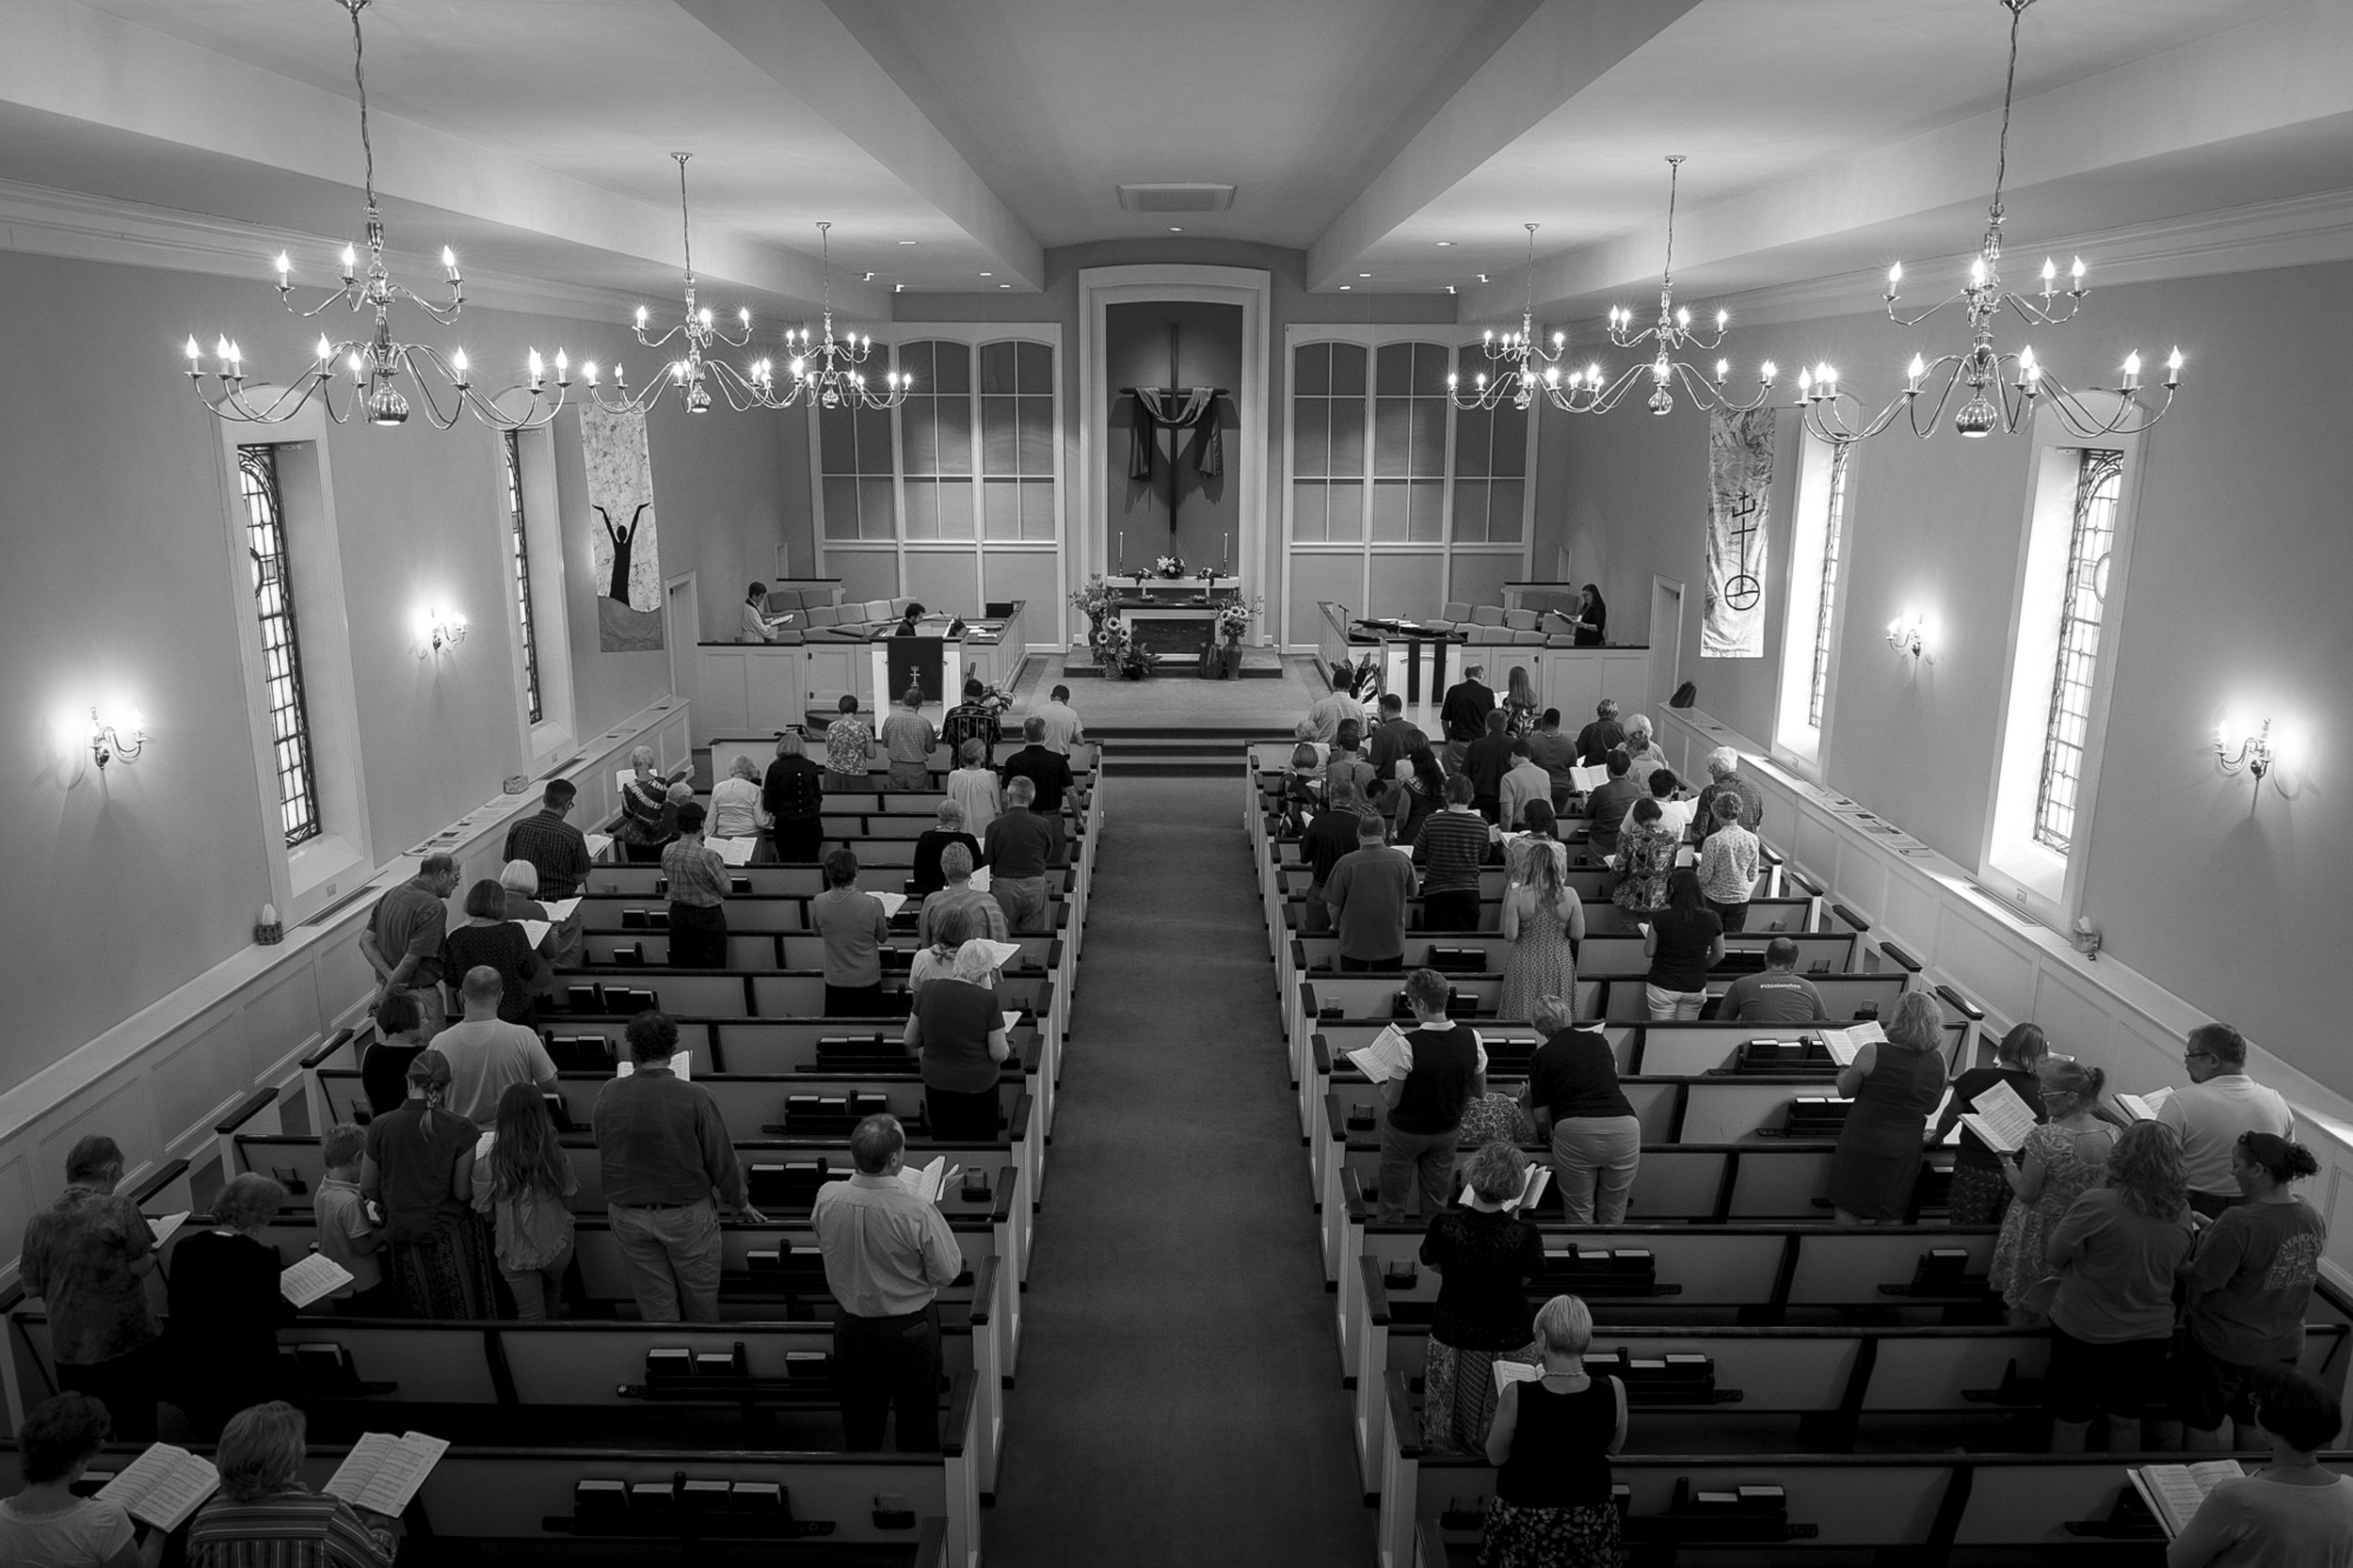 The Congregational United Church of Christ in Greensboro, NC holds Sunday worship on Sept. 24, 2017. The church recently decided to open up a sanctuary for undocumented immigrants. Minerva Garcia and her two sons, Mateo and Antonio, are the first to seek refuge in the church.